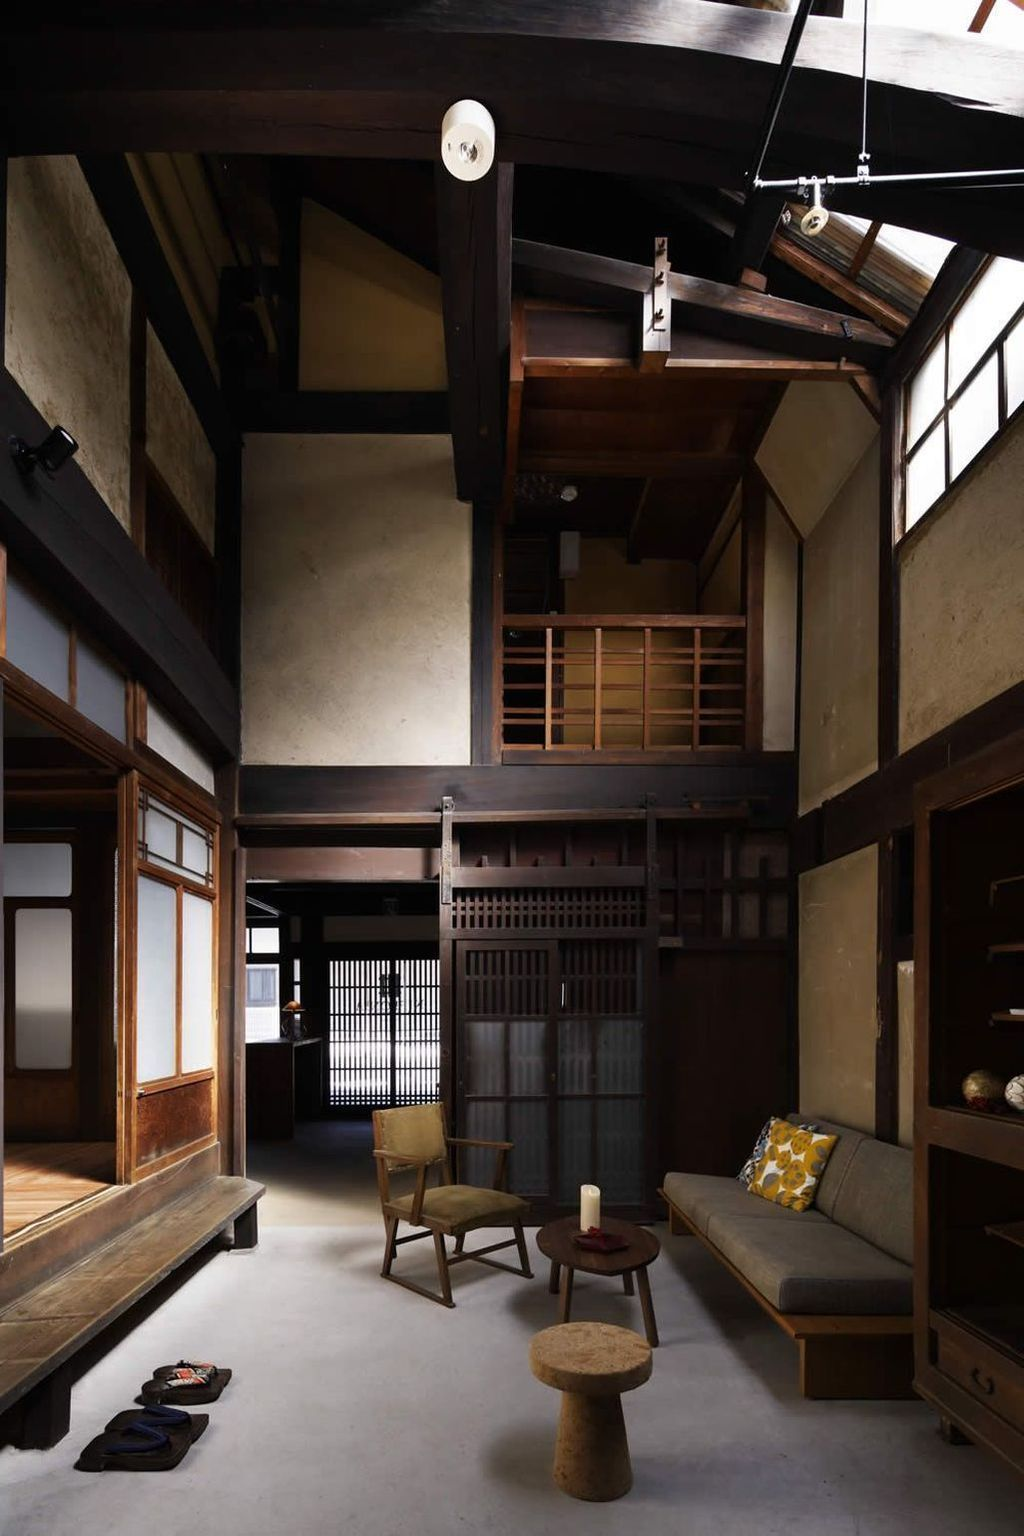 pin by decor home ideas on living room inspiration with images modern japanese interior on kitchen interior japan id=40809